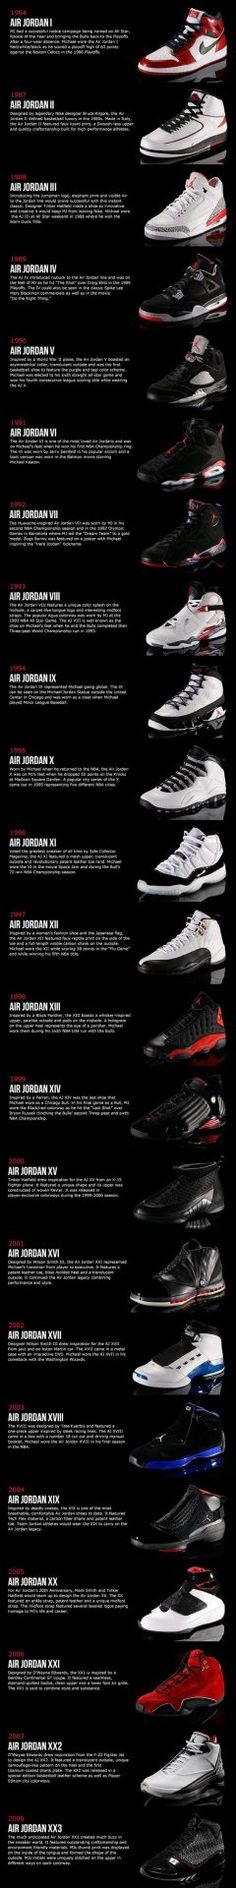 factory authentic 6dde7 759e7 Classic Nike Shoes Collection — Nike air jordan series all at.